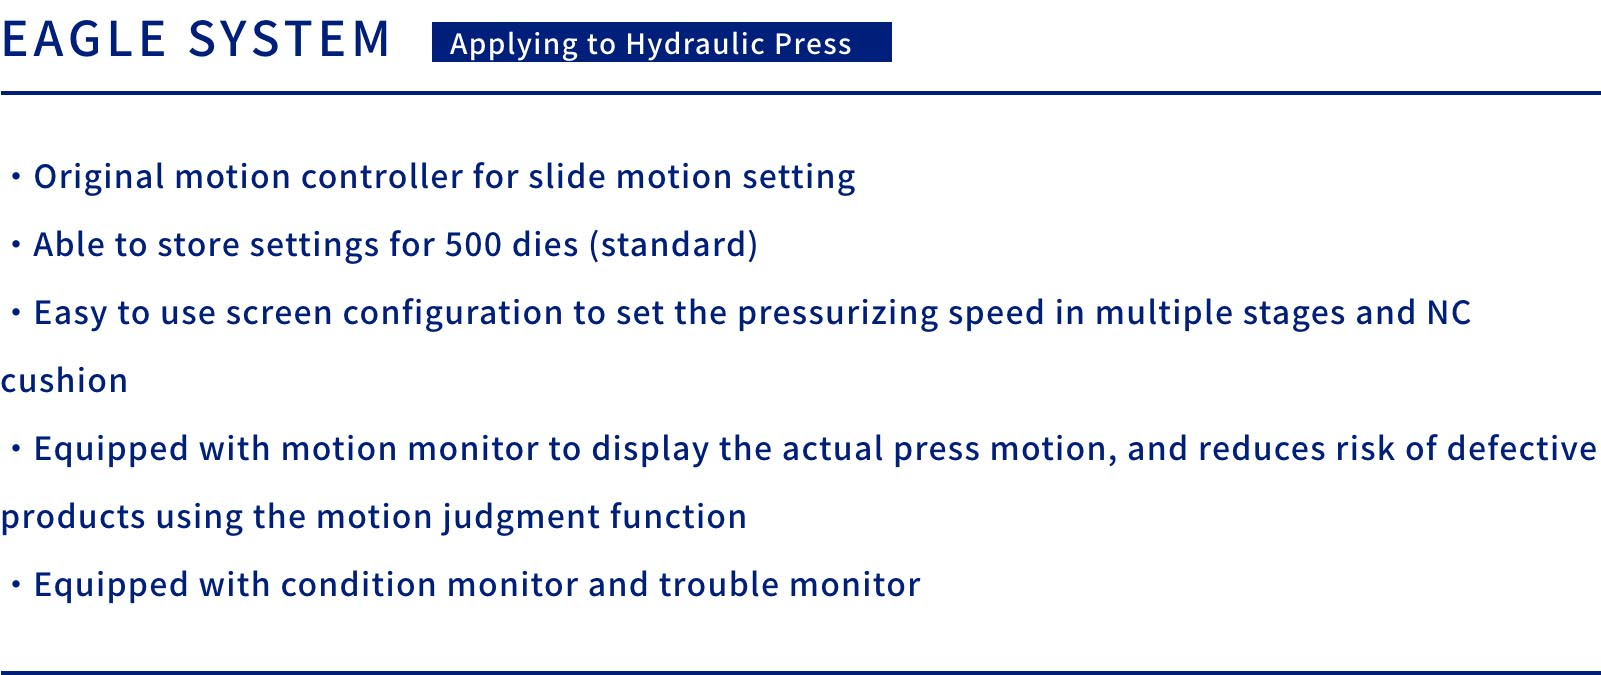 EAGLE SYSTEM  Applying to Hydraulic Press    ・Original motion controller for slide motion setting・Able to store settings for 500 dies (standard)・Easy to use screen configuration to set the pressurizing speed in multiple stages and NC cushion・Equipped with motion monitor to display the actual press motion, and reduces risk of defective products using the motion judgment function・Equipped with condition monitor and trouble monitor